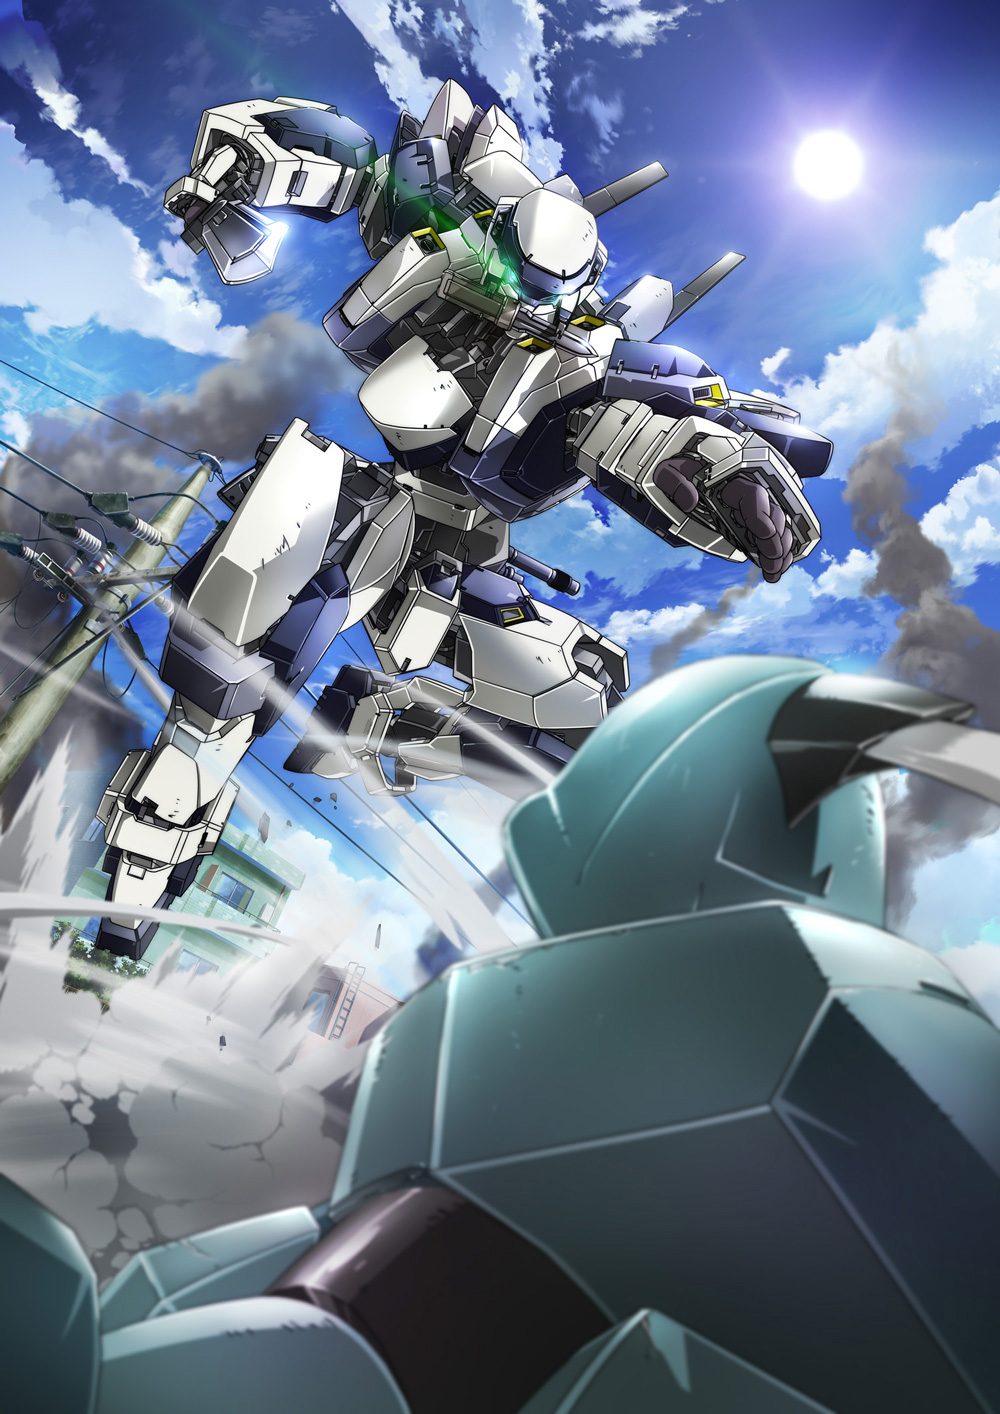 Full-Metal-Panic!-Invisible-Victory-Visual-03